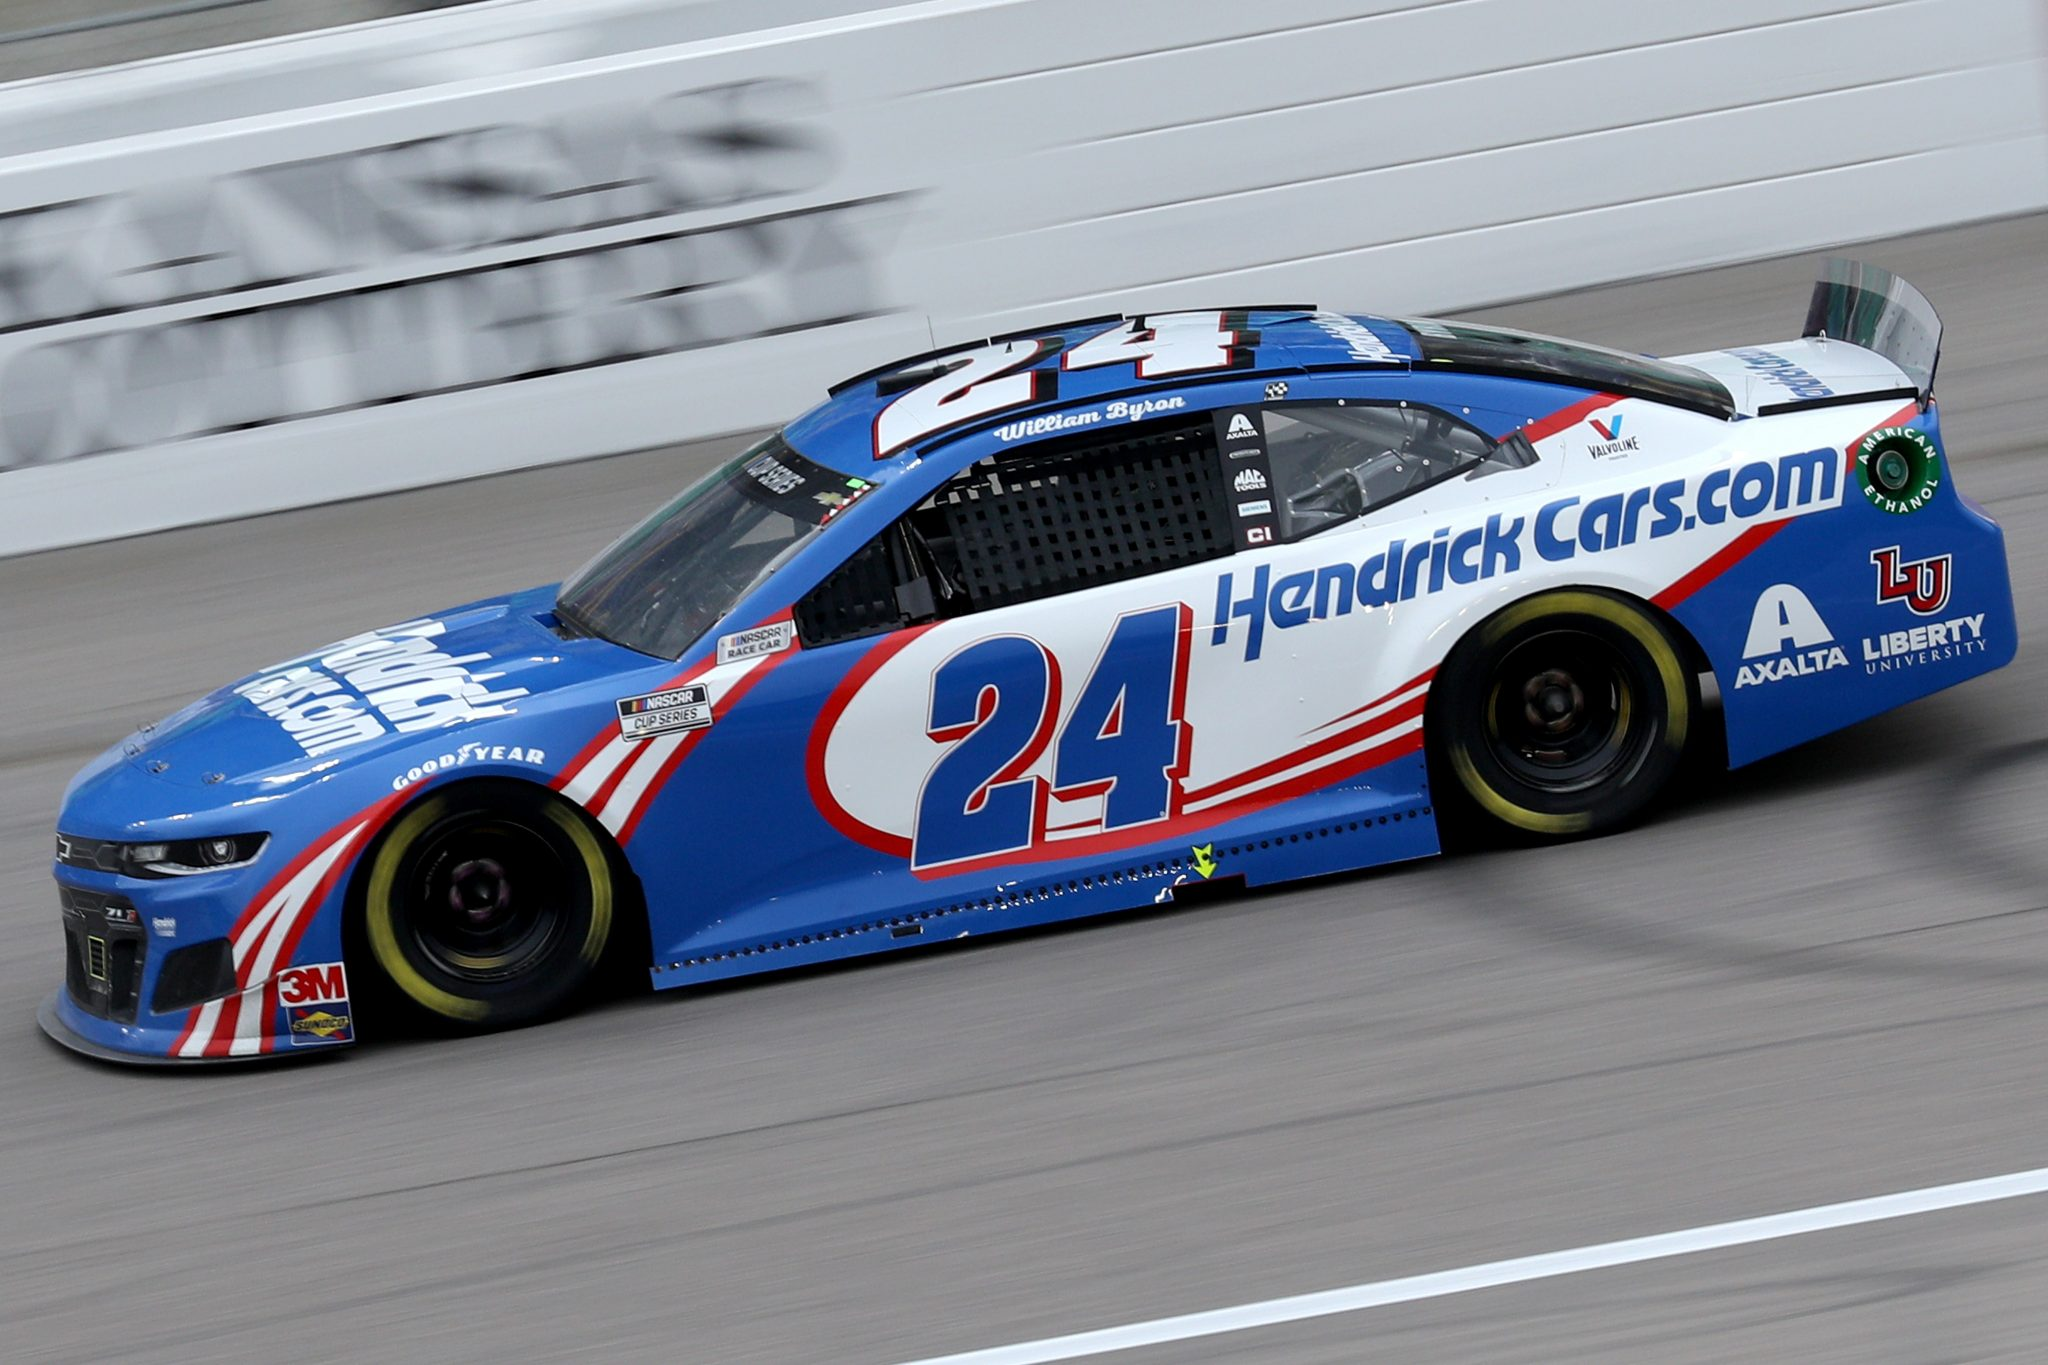 KANSAS CITY, KANSAS - OCTOBER 18: William Byron, driver of the #24 Hendrickcars.com Chevrolet, drives during the NASCAR Cup Series Hollywood Casino 400 at Kansas Speedway on October 18, 2020 in Kansas City, Kansas. (Photo by Chris Graythen/Getty Images) | Getty Images